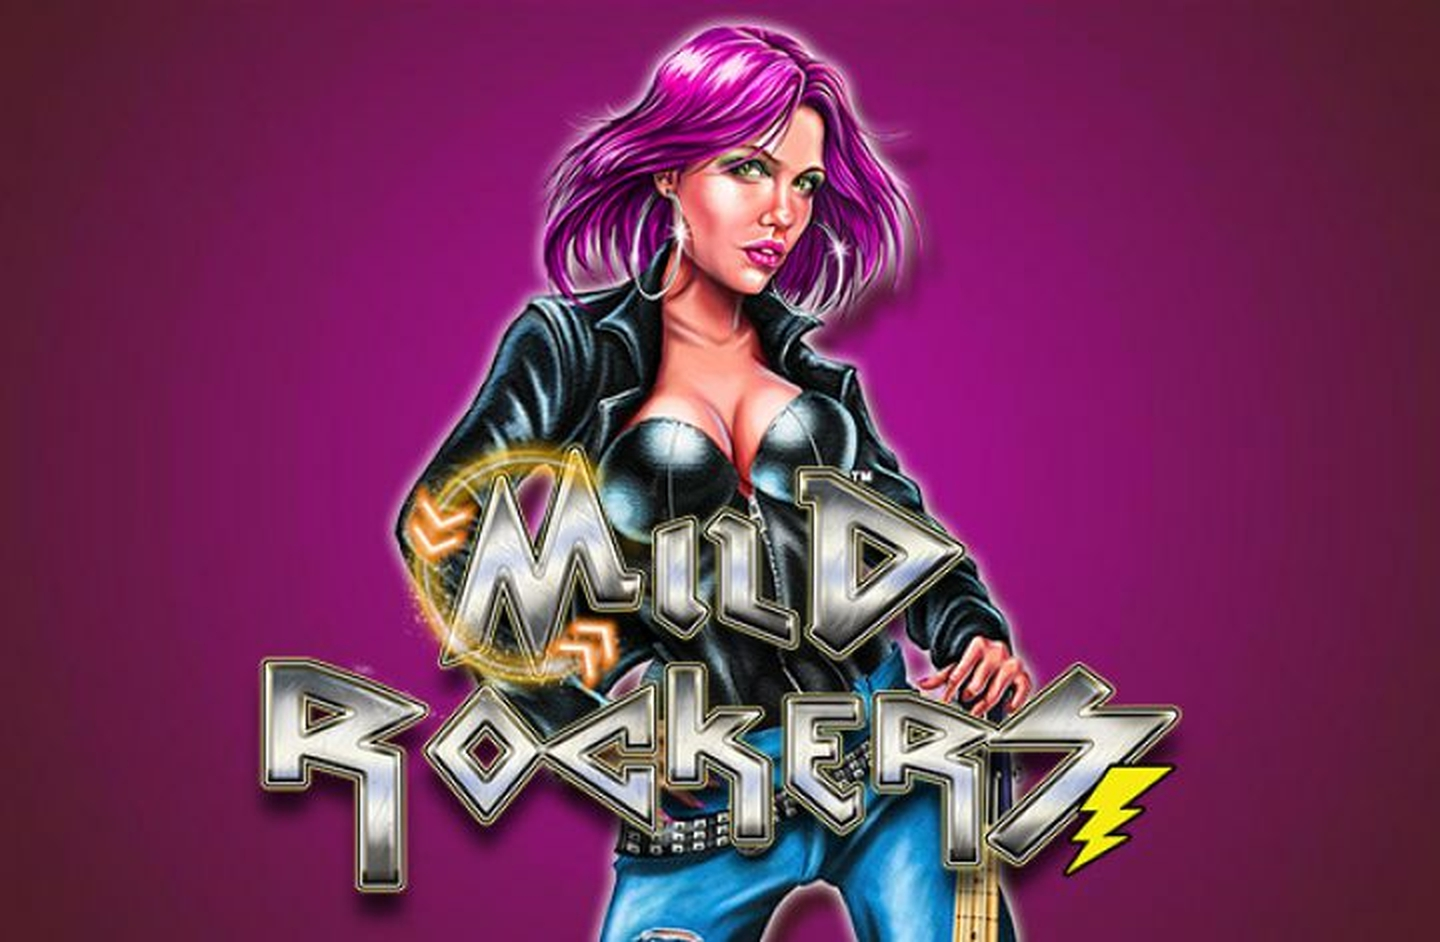 The Mild Rockers Online Slot Demo Game by Lightning Box